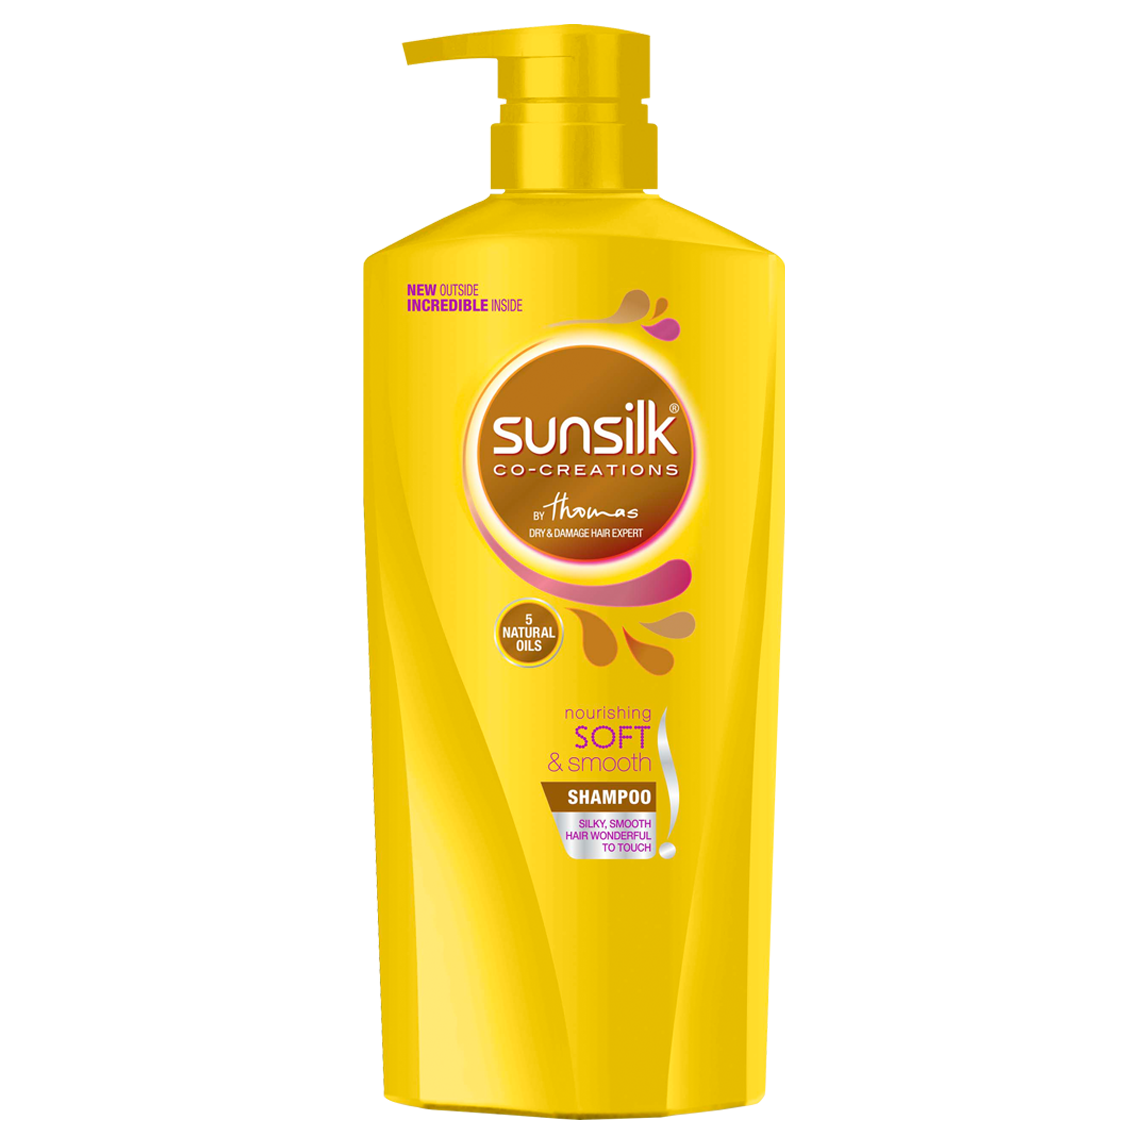 Shampoo: find the right kind for your hair | Sunsilk India